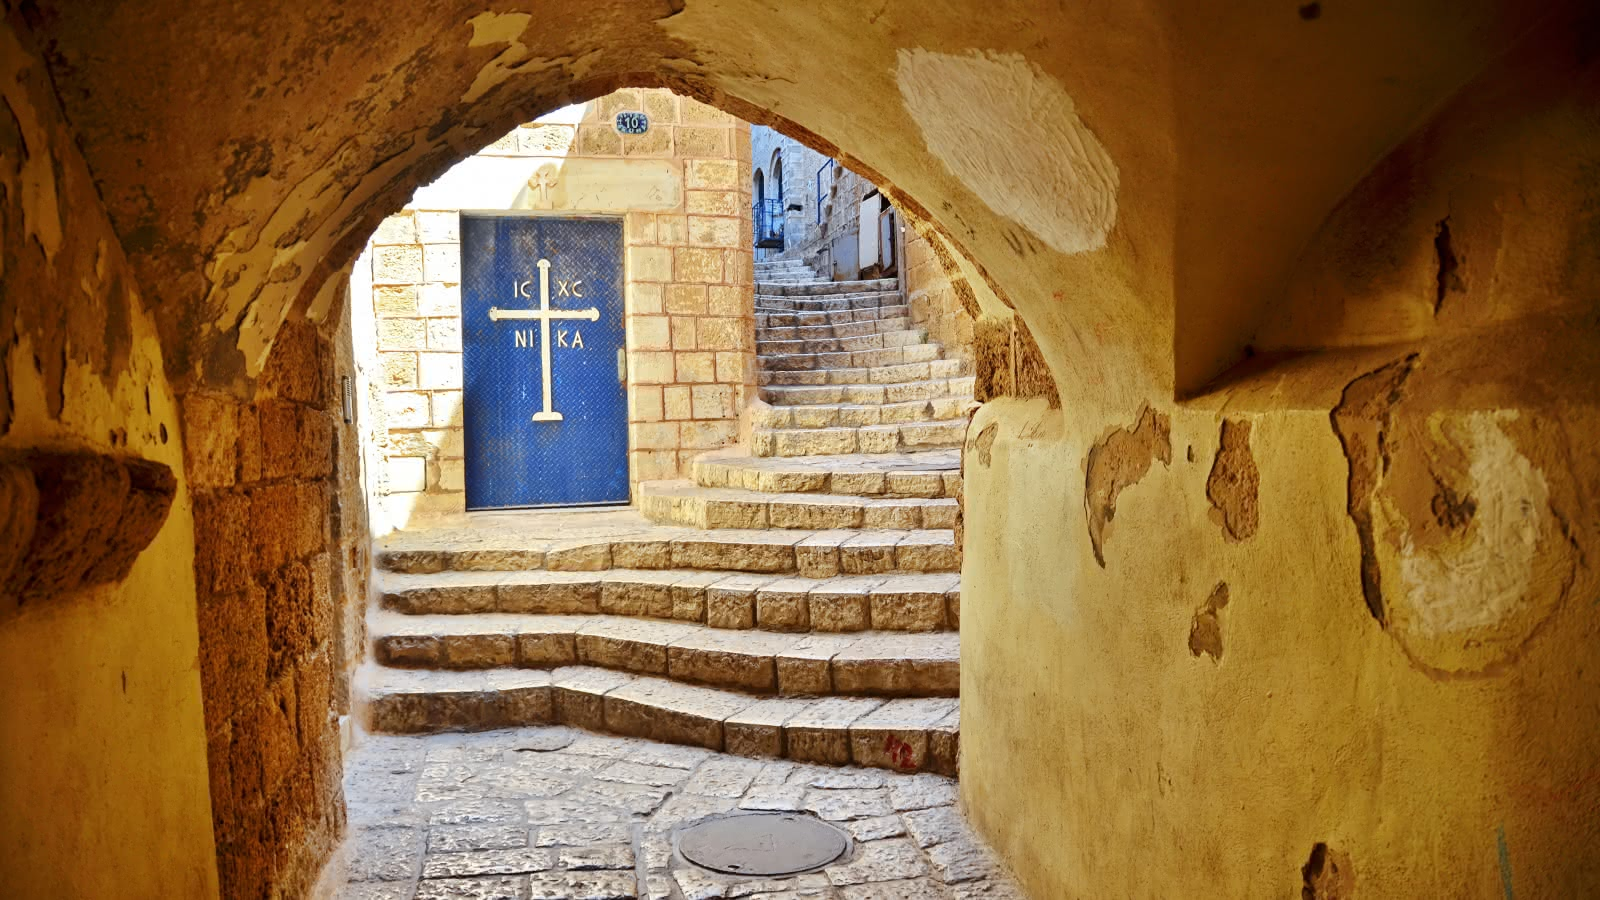 sandemans tel aviv walking tours